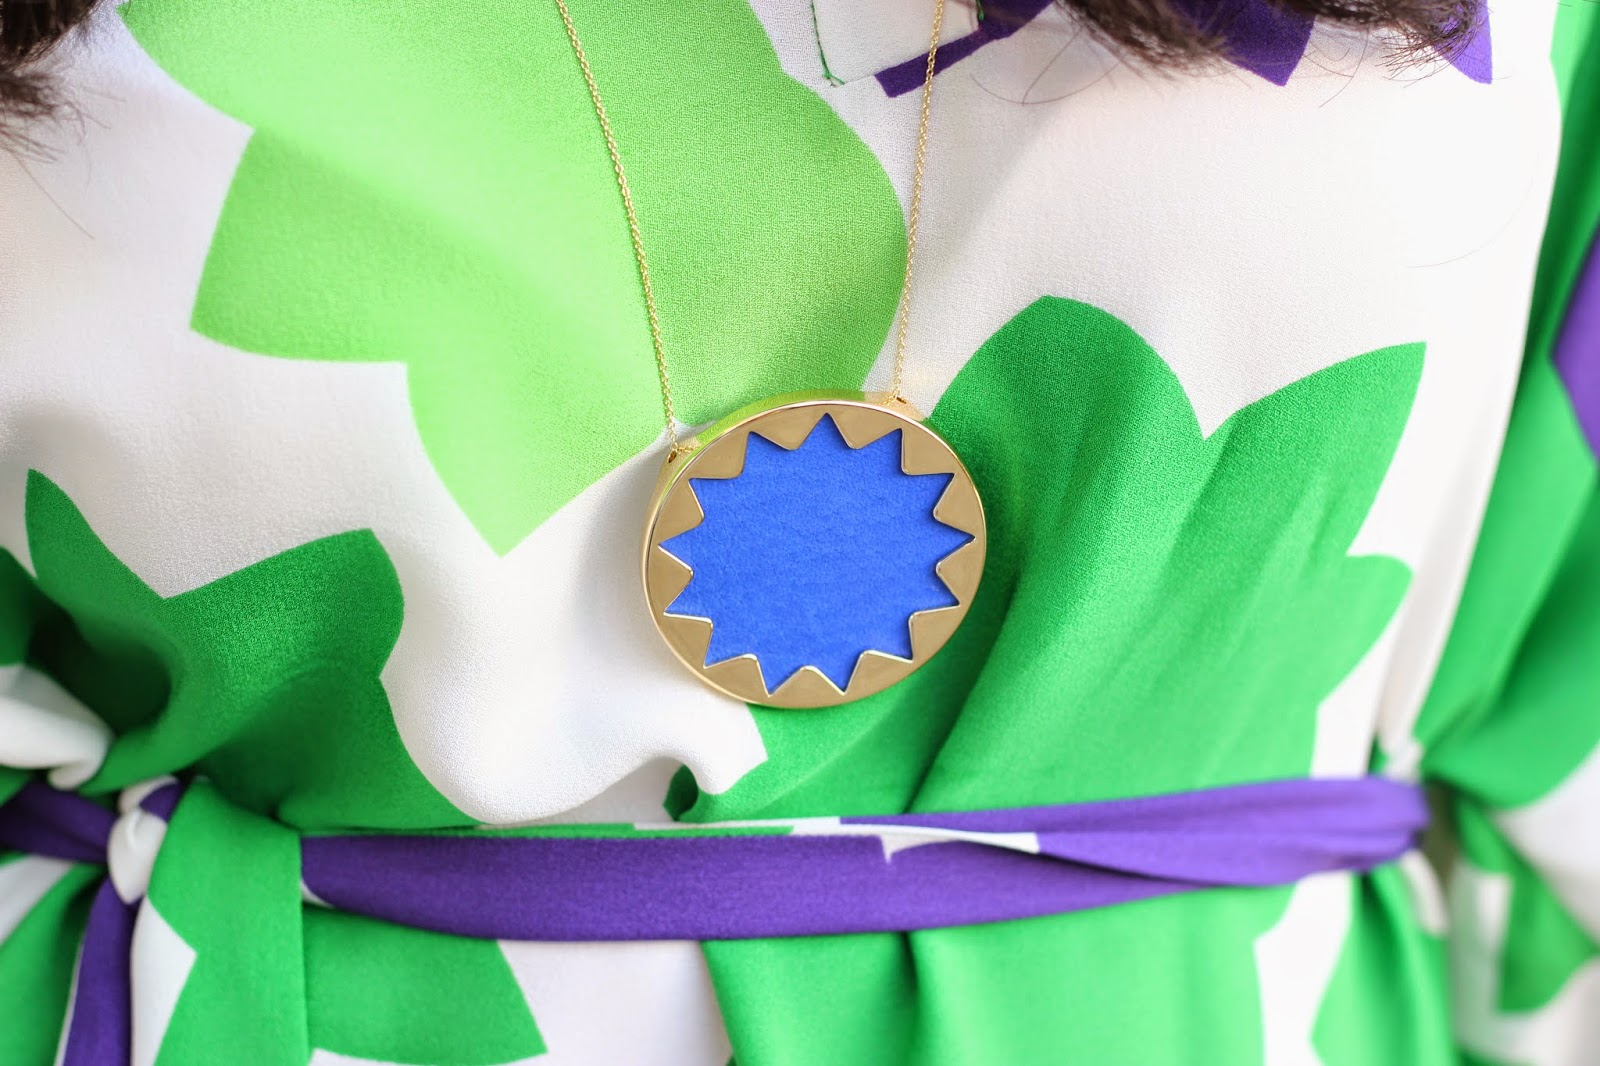 House of Harlow Cobalt Sunburst Necklace